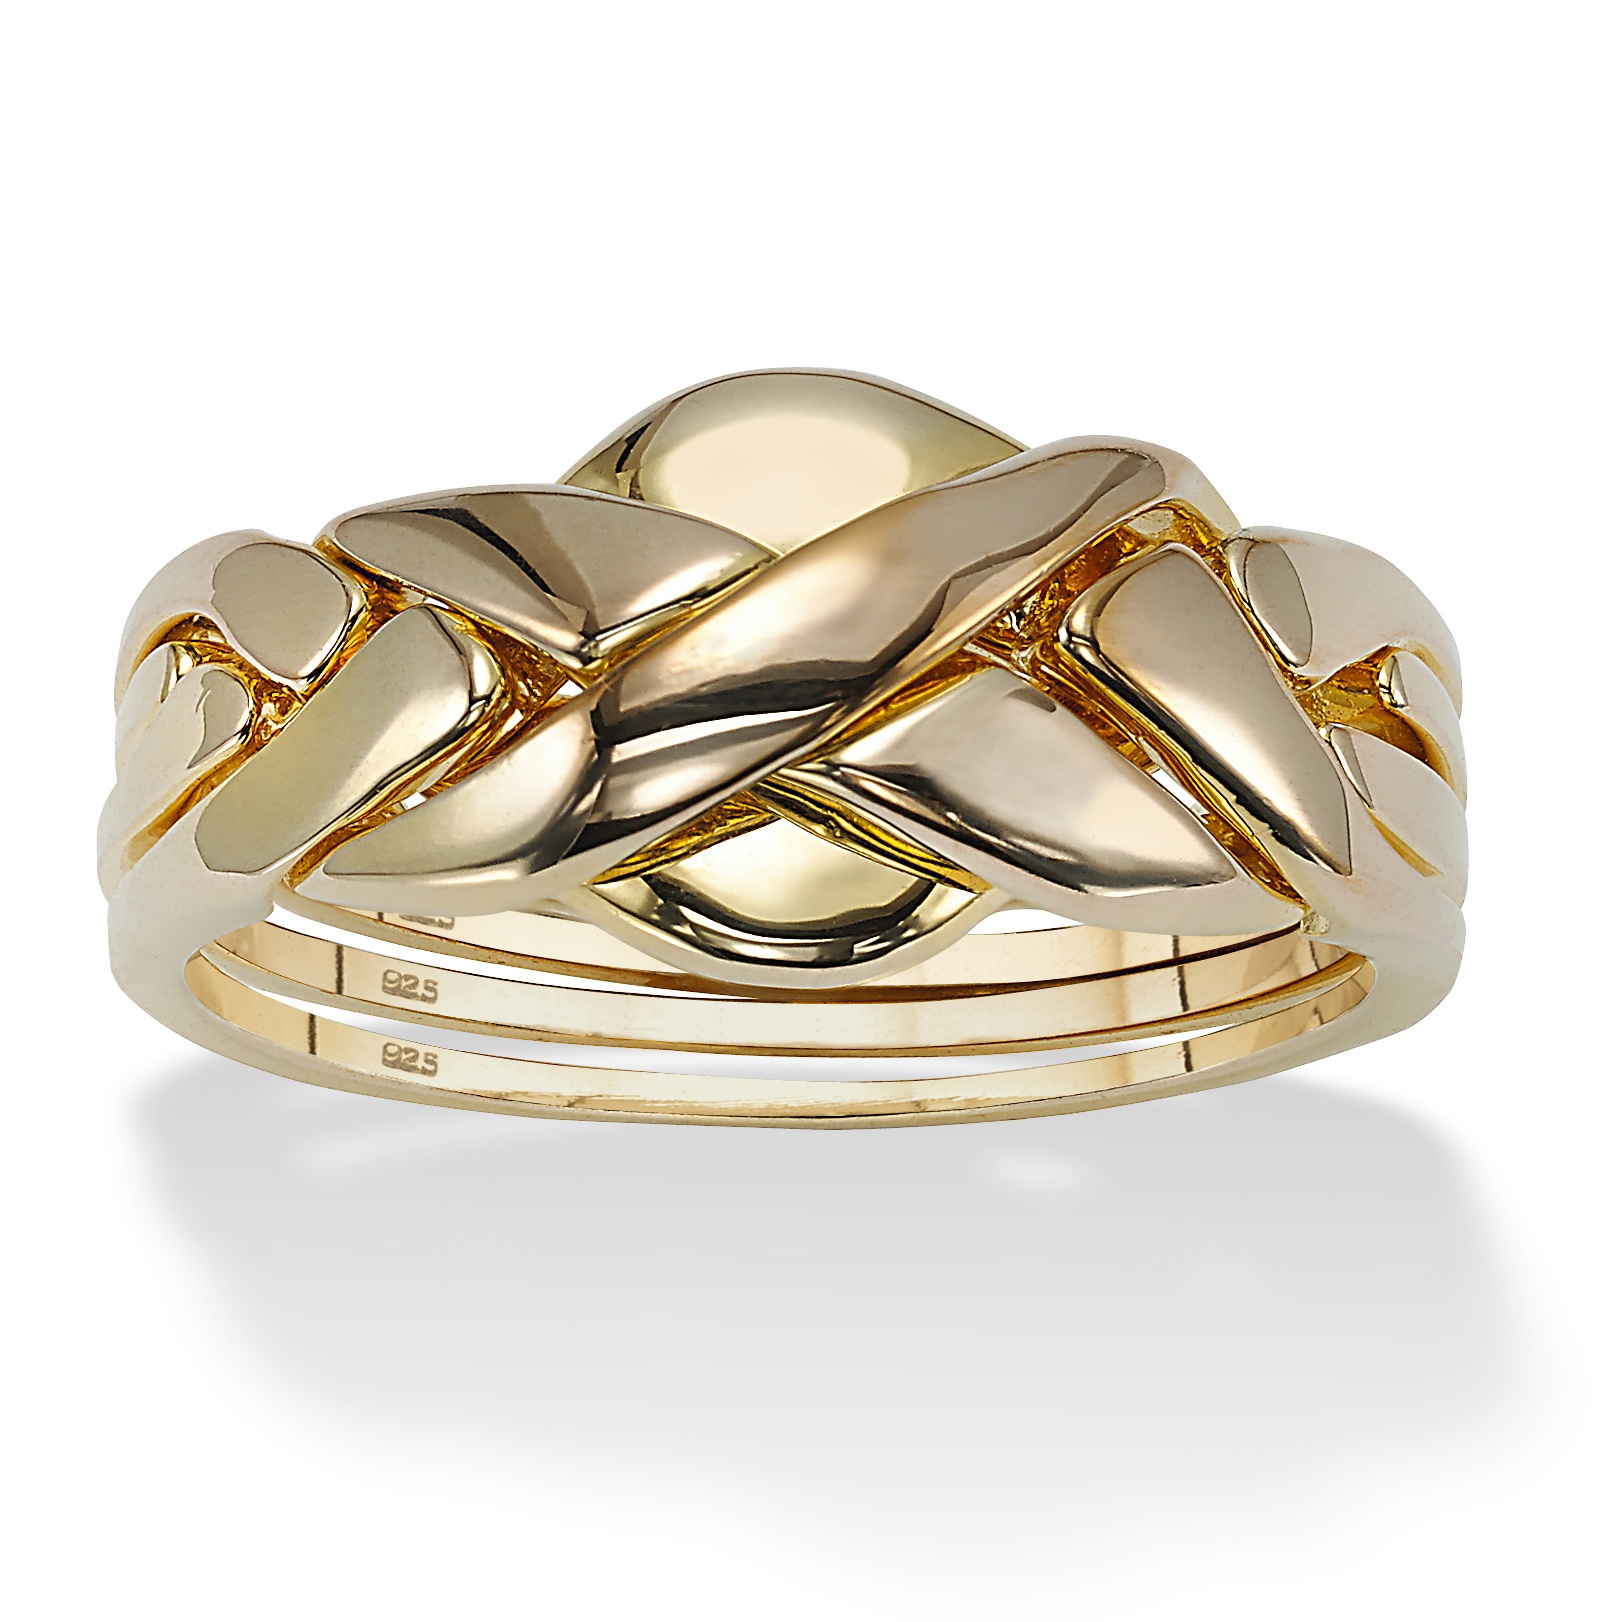 palmbeach jewelry 18k yellow gold 925 sterling silver